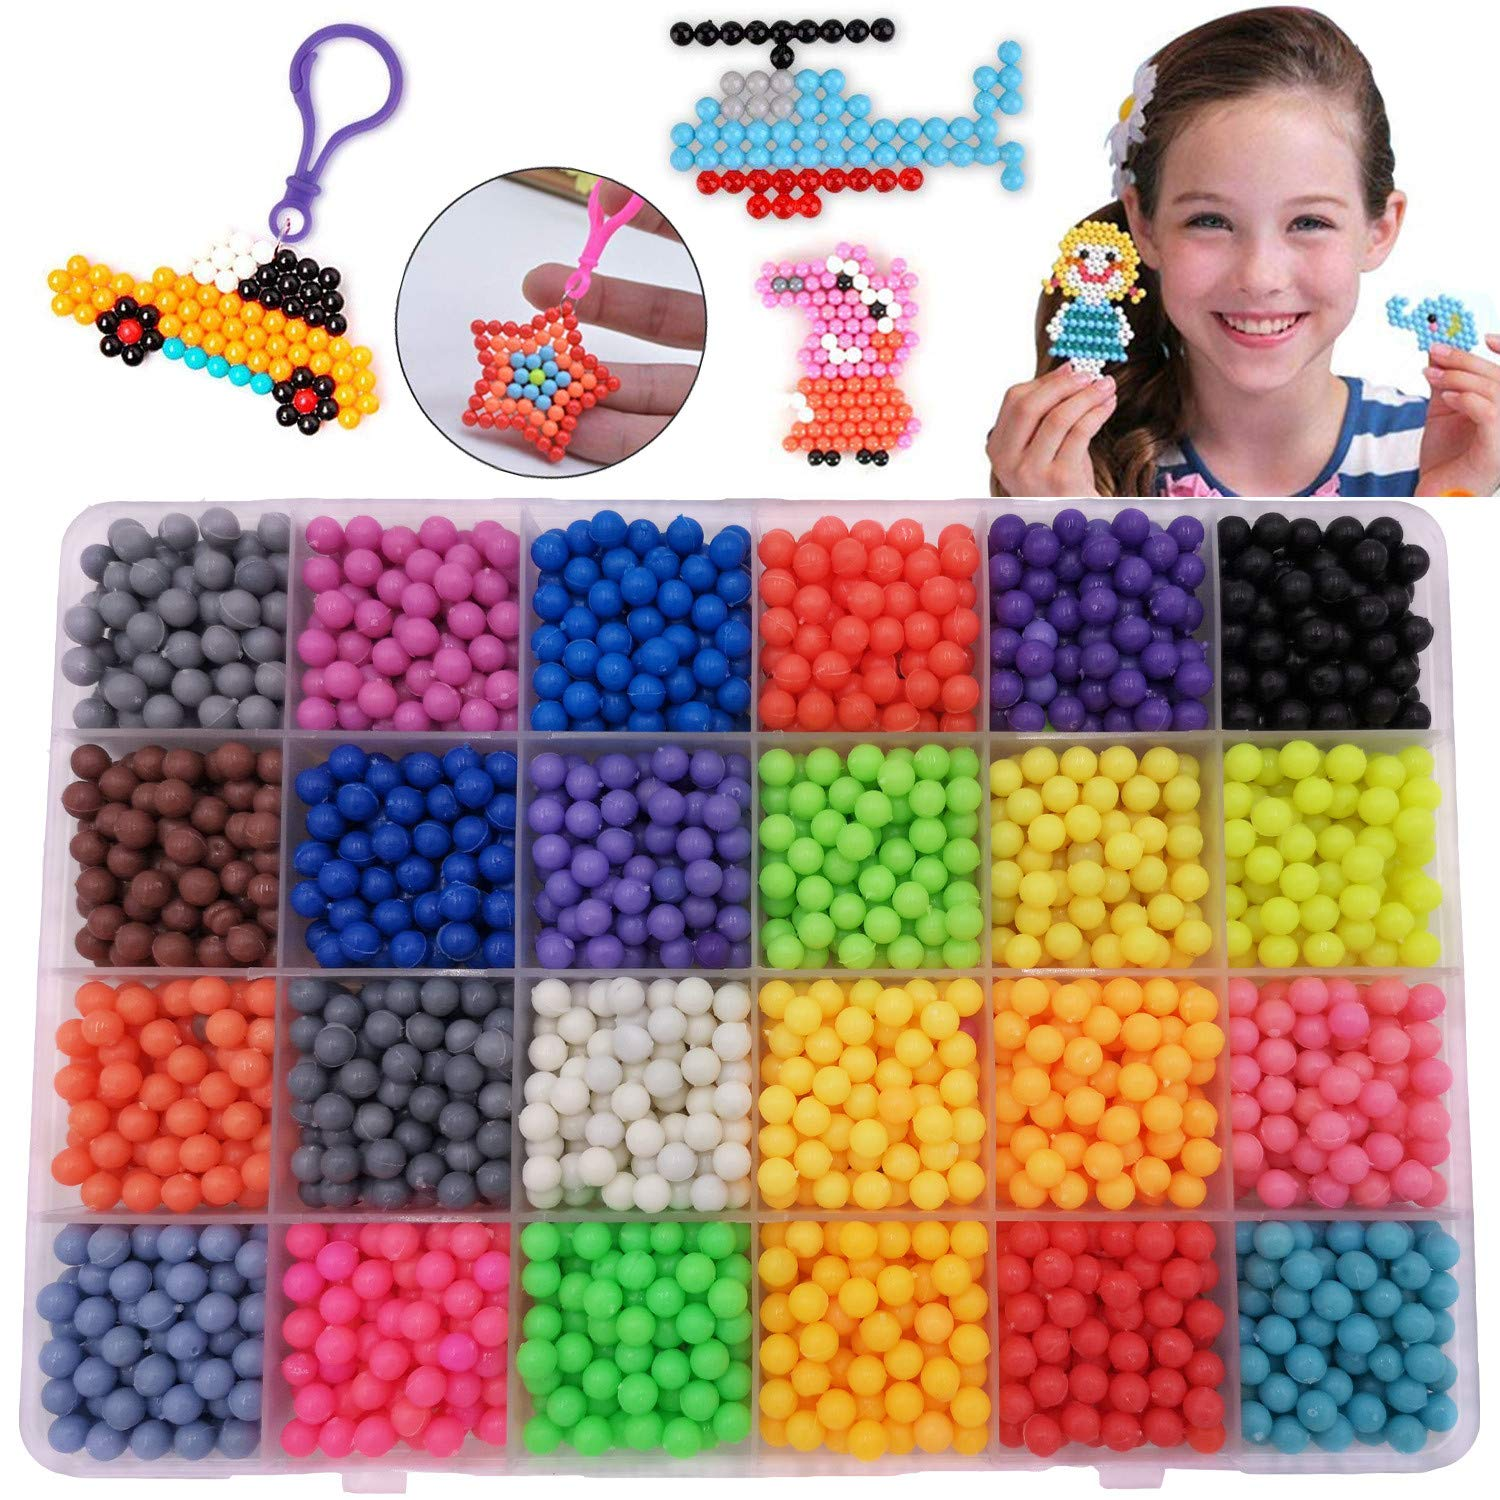 Time-killer Fuse Beads Kit - 2400 pcs 24 Colors Water Sticky Bead with DIY Pegboard and Full Set Accessories Art Crafts Educational Toys for Kids Beginners (2400 Beads Complete Set)